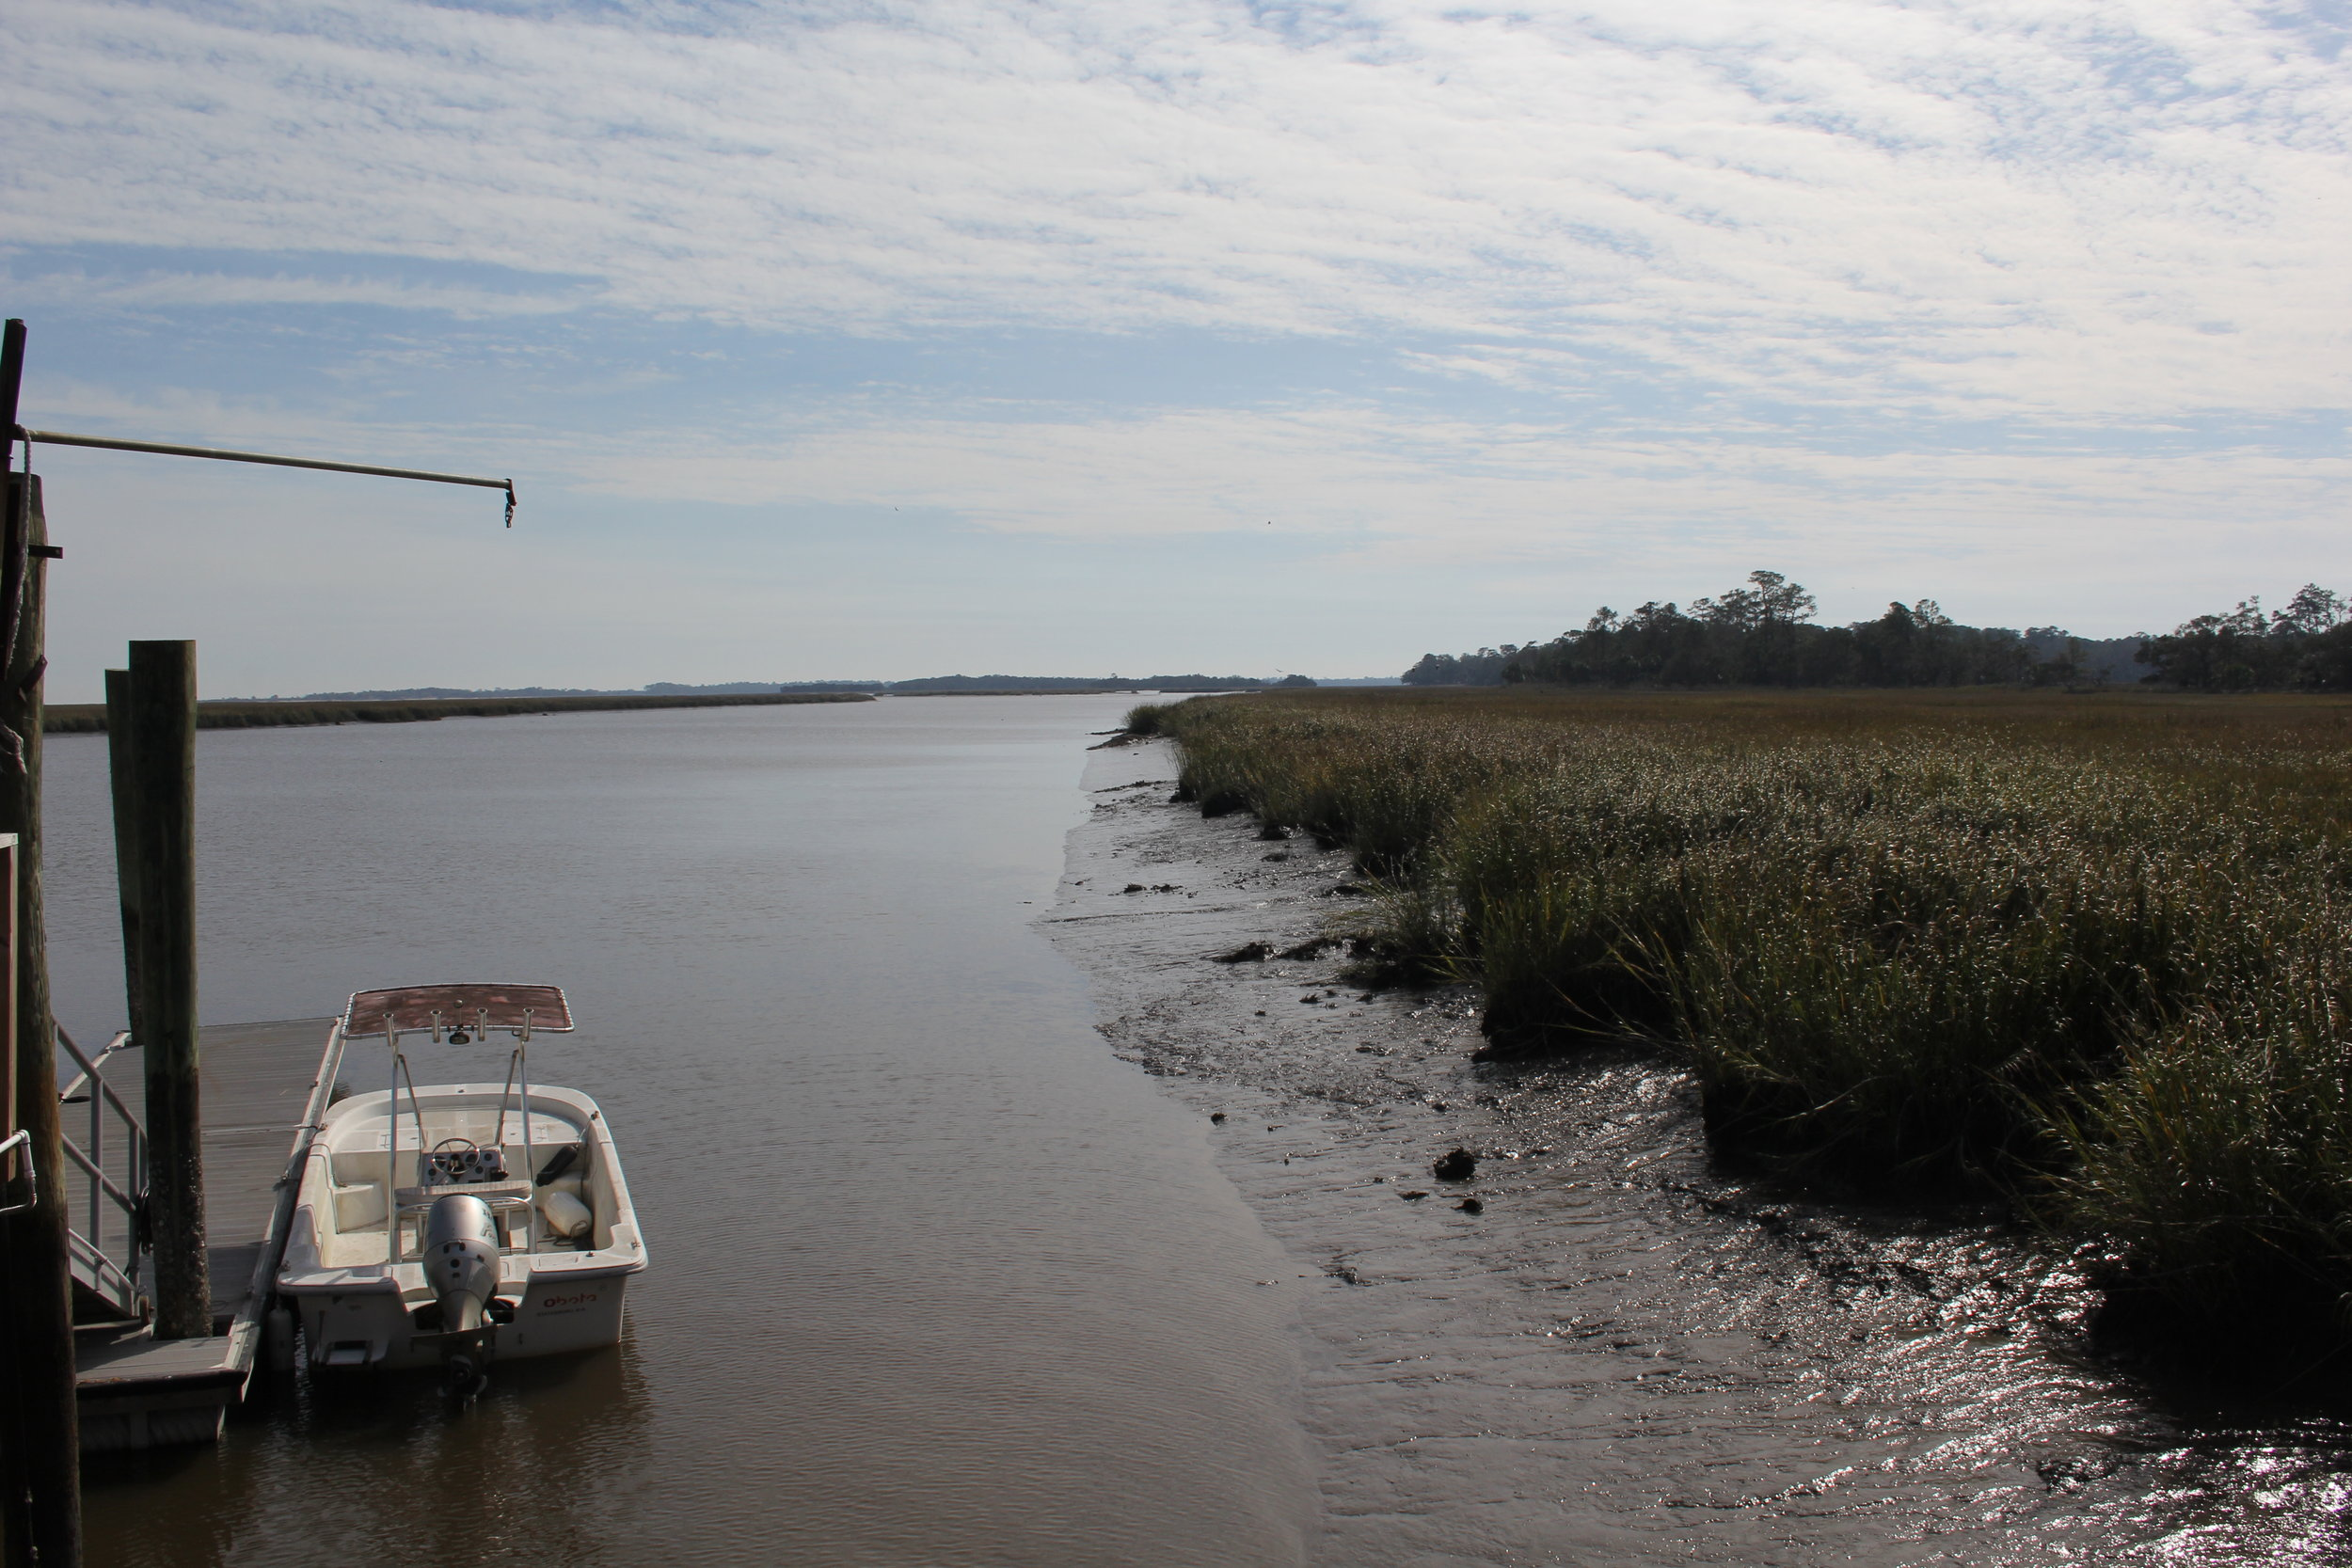 The protected, marshy coast of Ossabaw Island, Georgia, served as an example for the effects of rising sea levels.